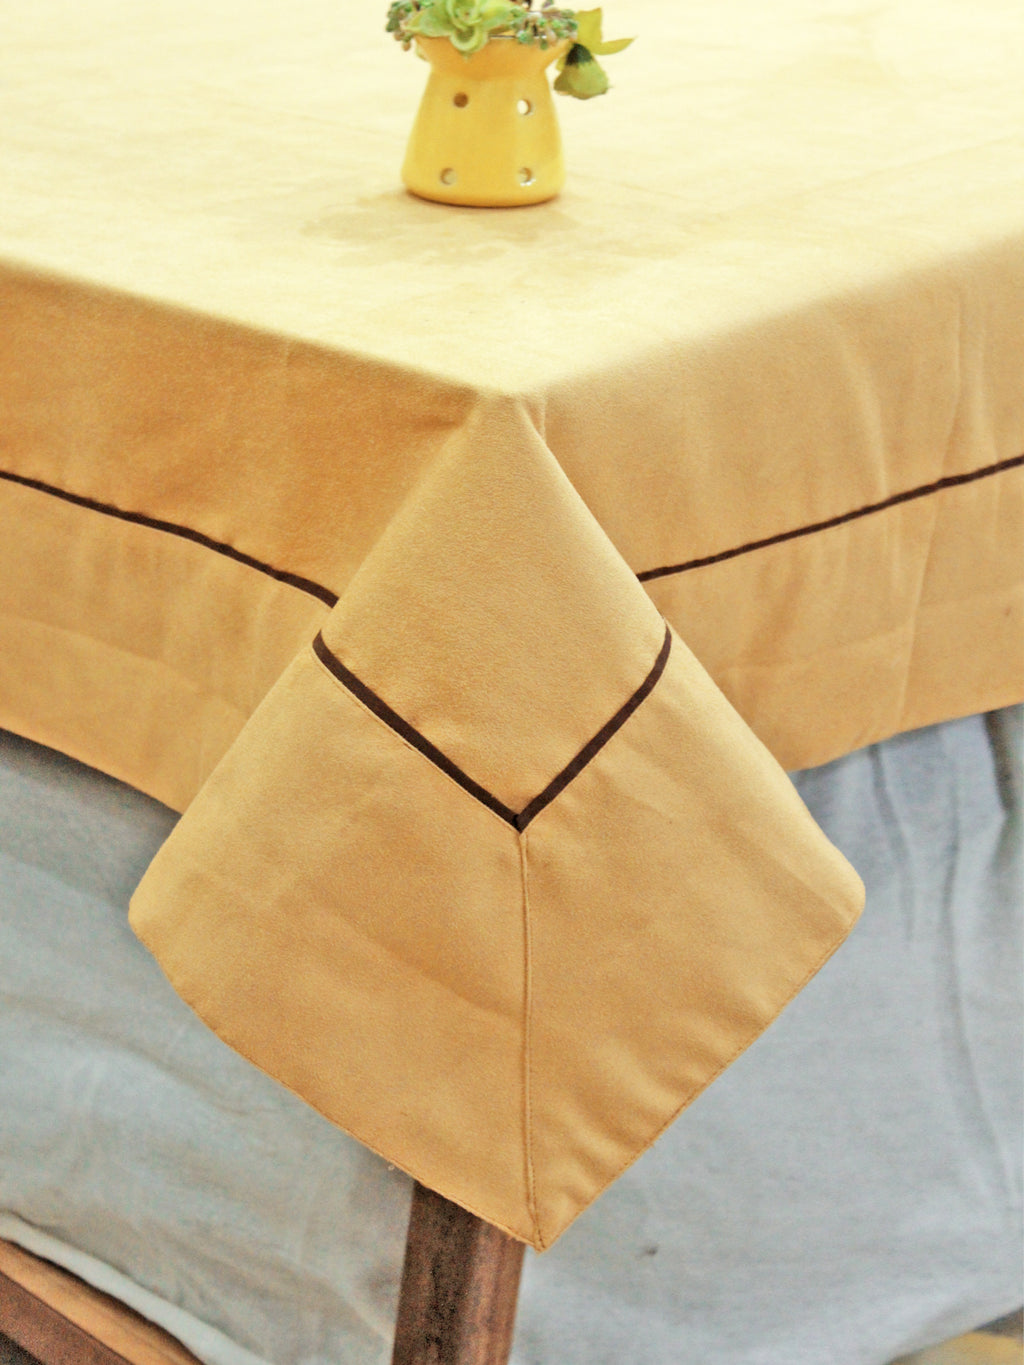 AURAVE Suede Microfibre Solid Plain Polyester Table Cloth - GOLD